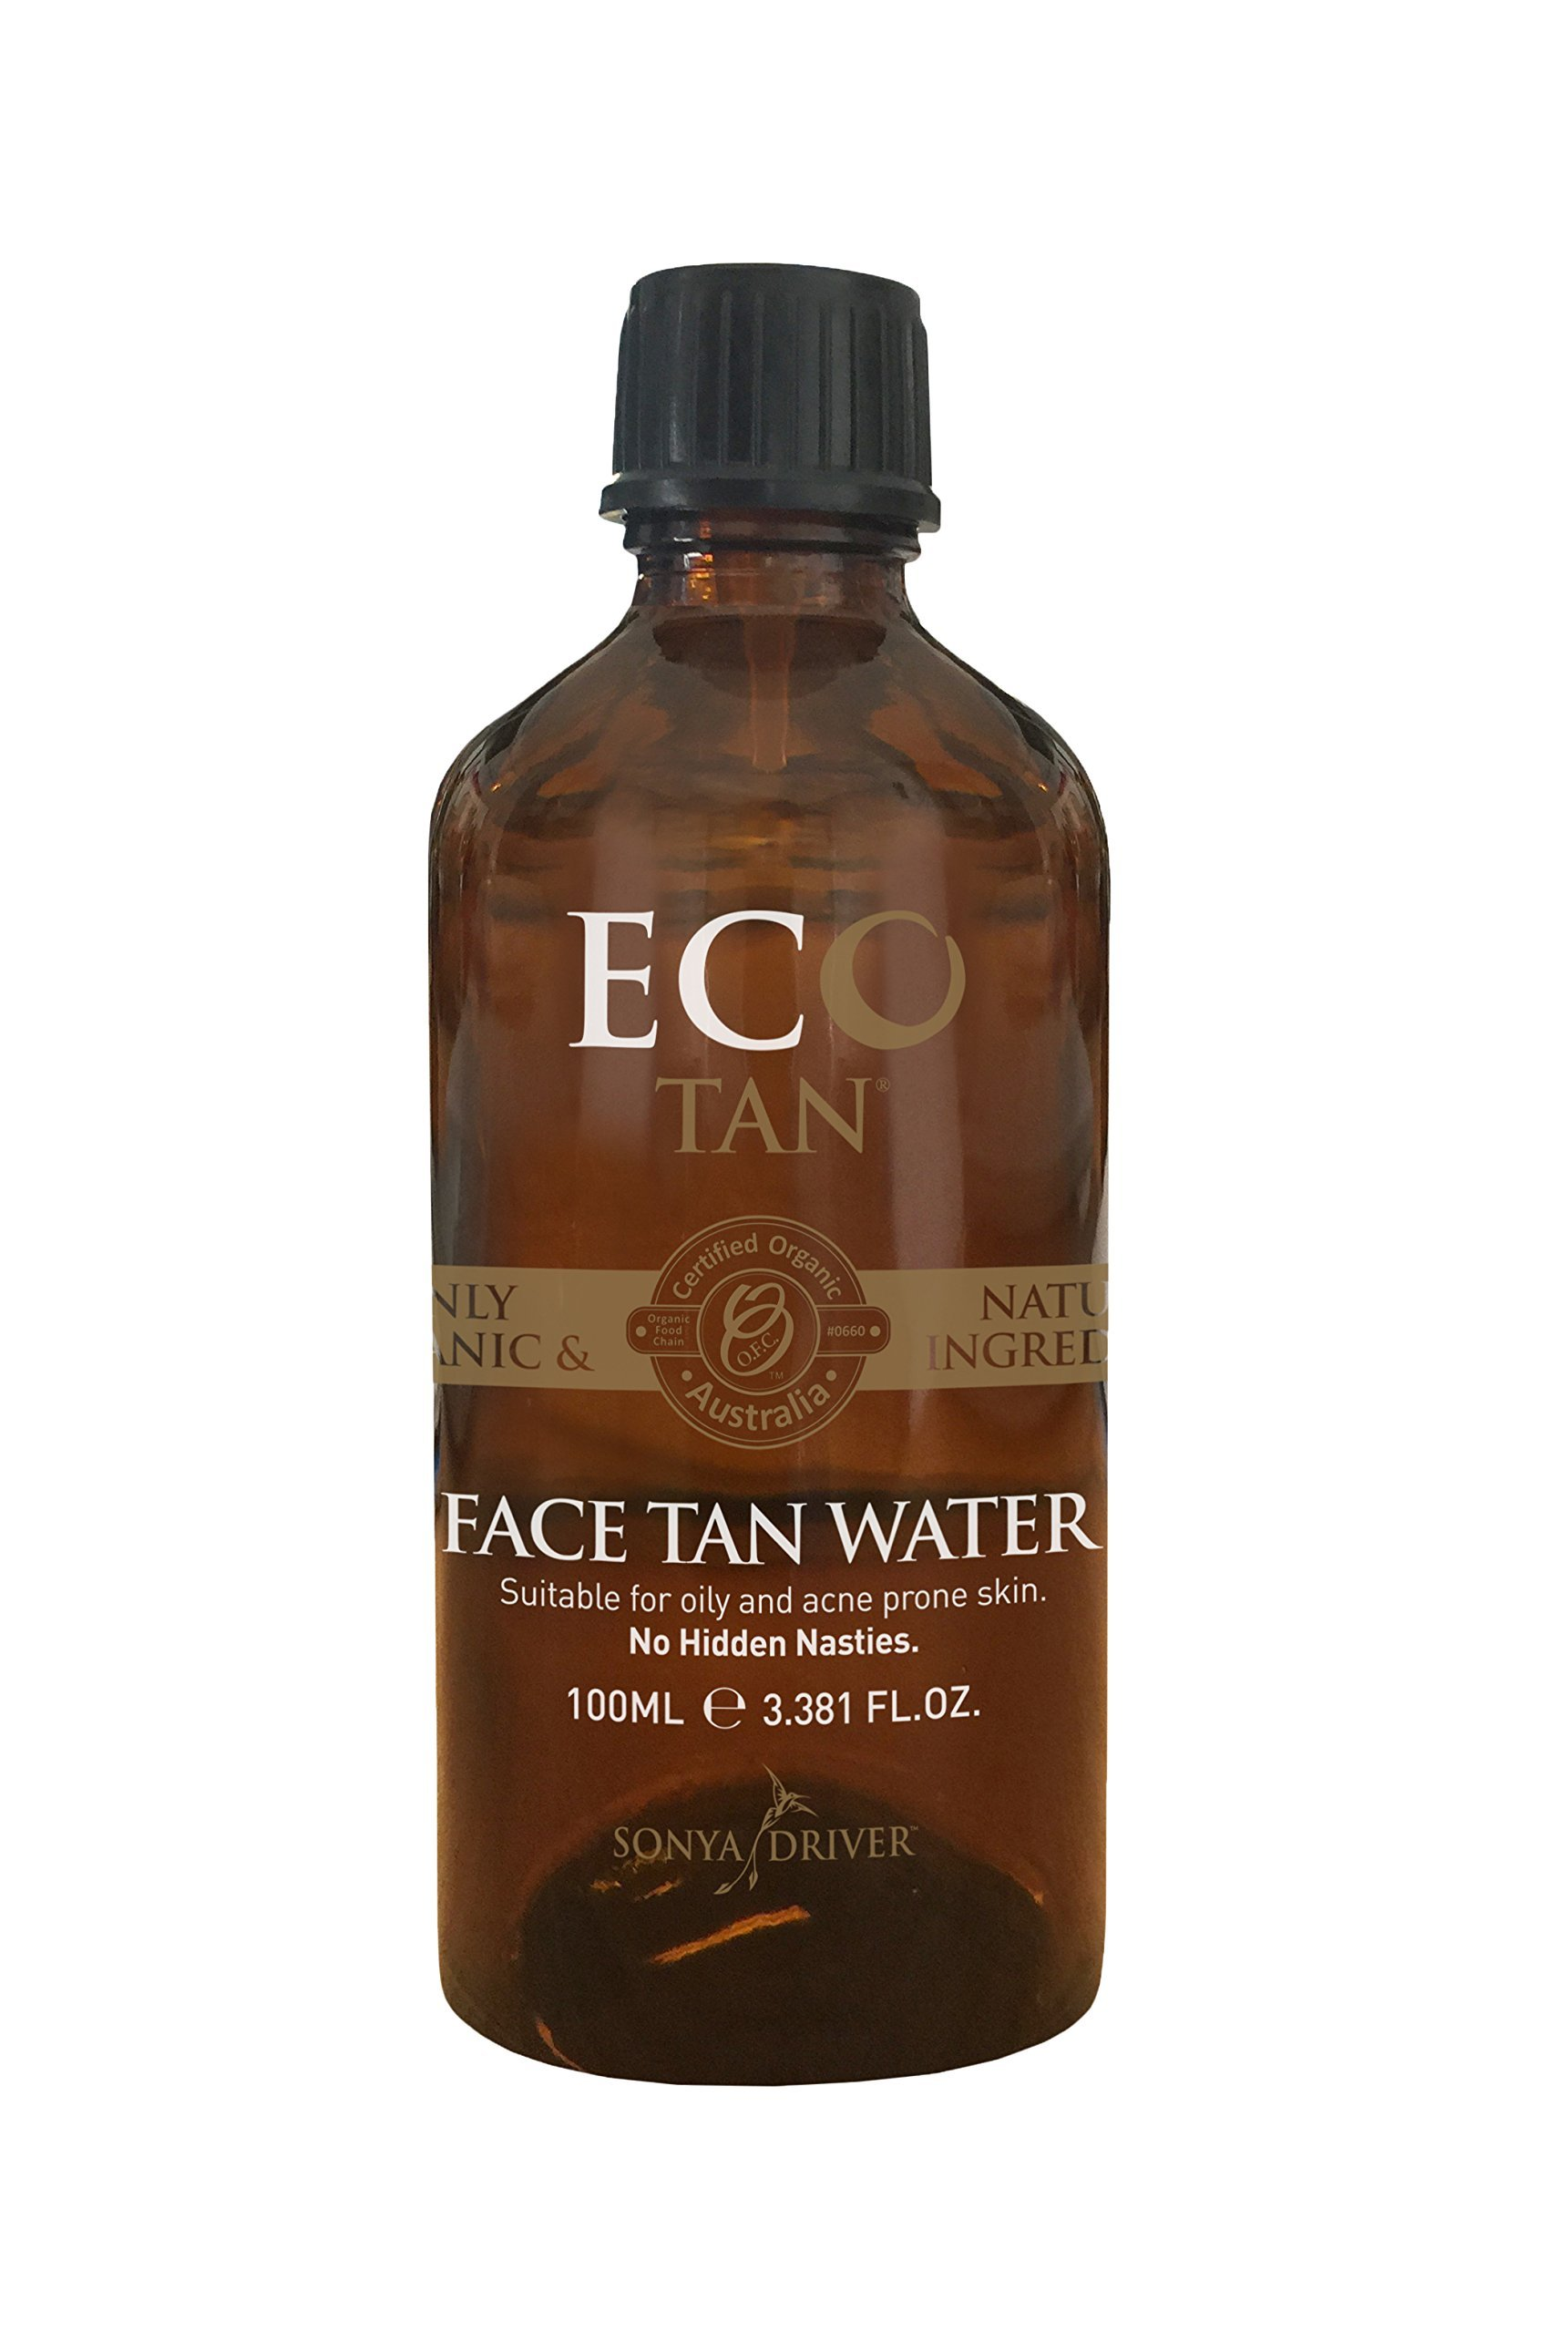 Eco Tan - Organic Face Tan Water (Suitable for oily and acne-prone skin) by E-Cotan